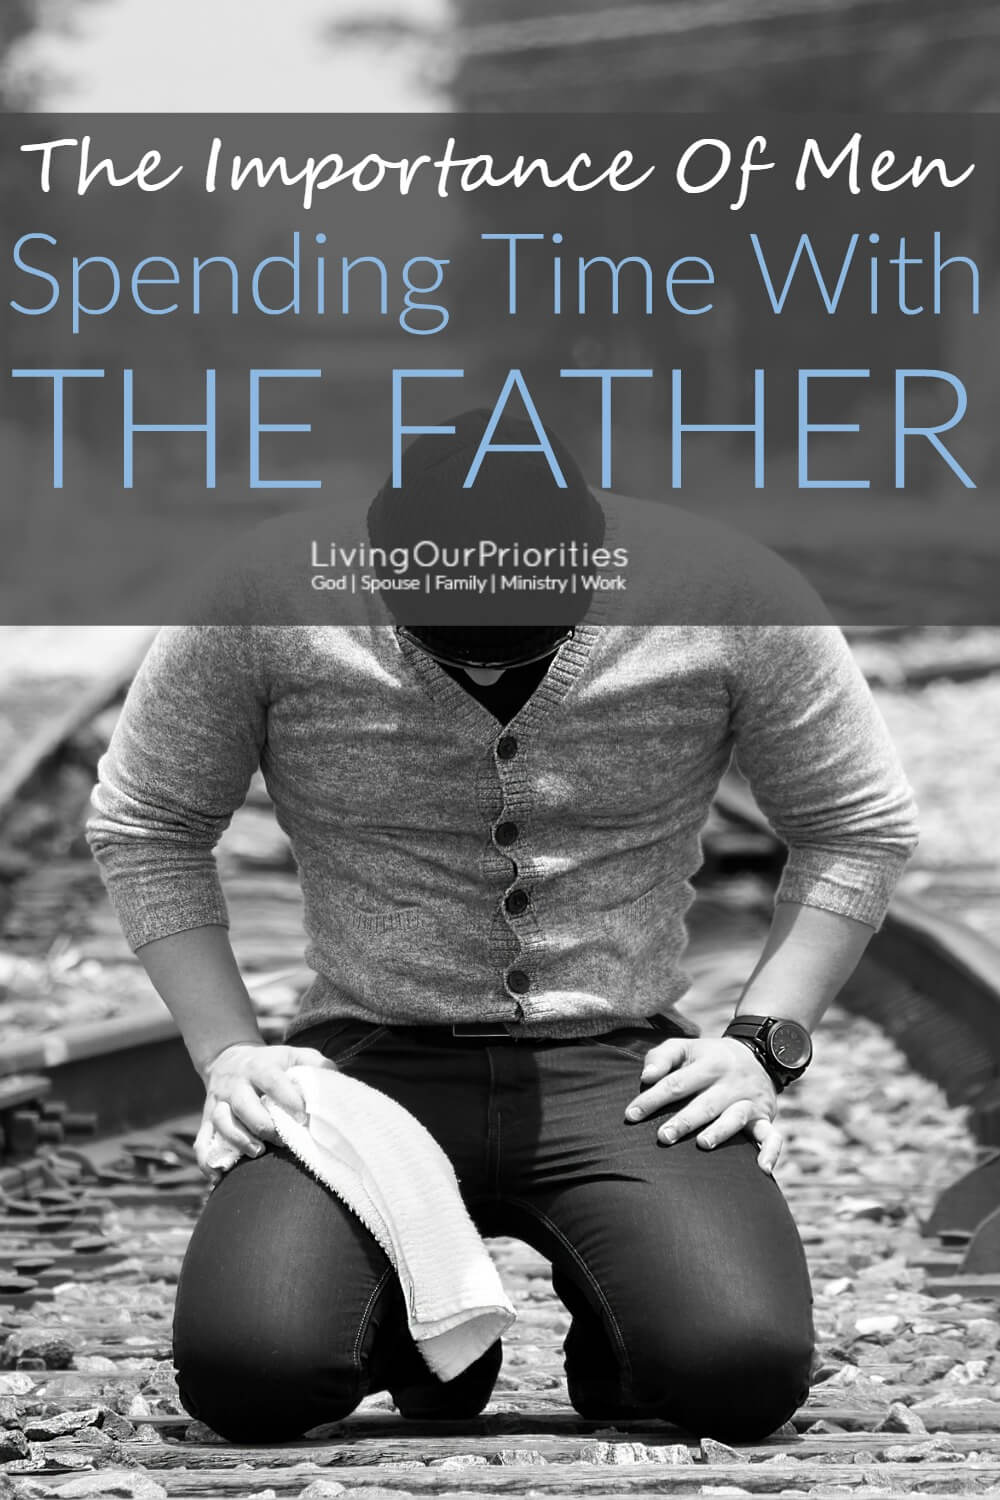 To effectively lead in the different roles were in as men, we need to make spending time with The Father a priority.